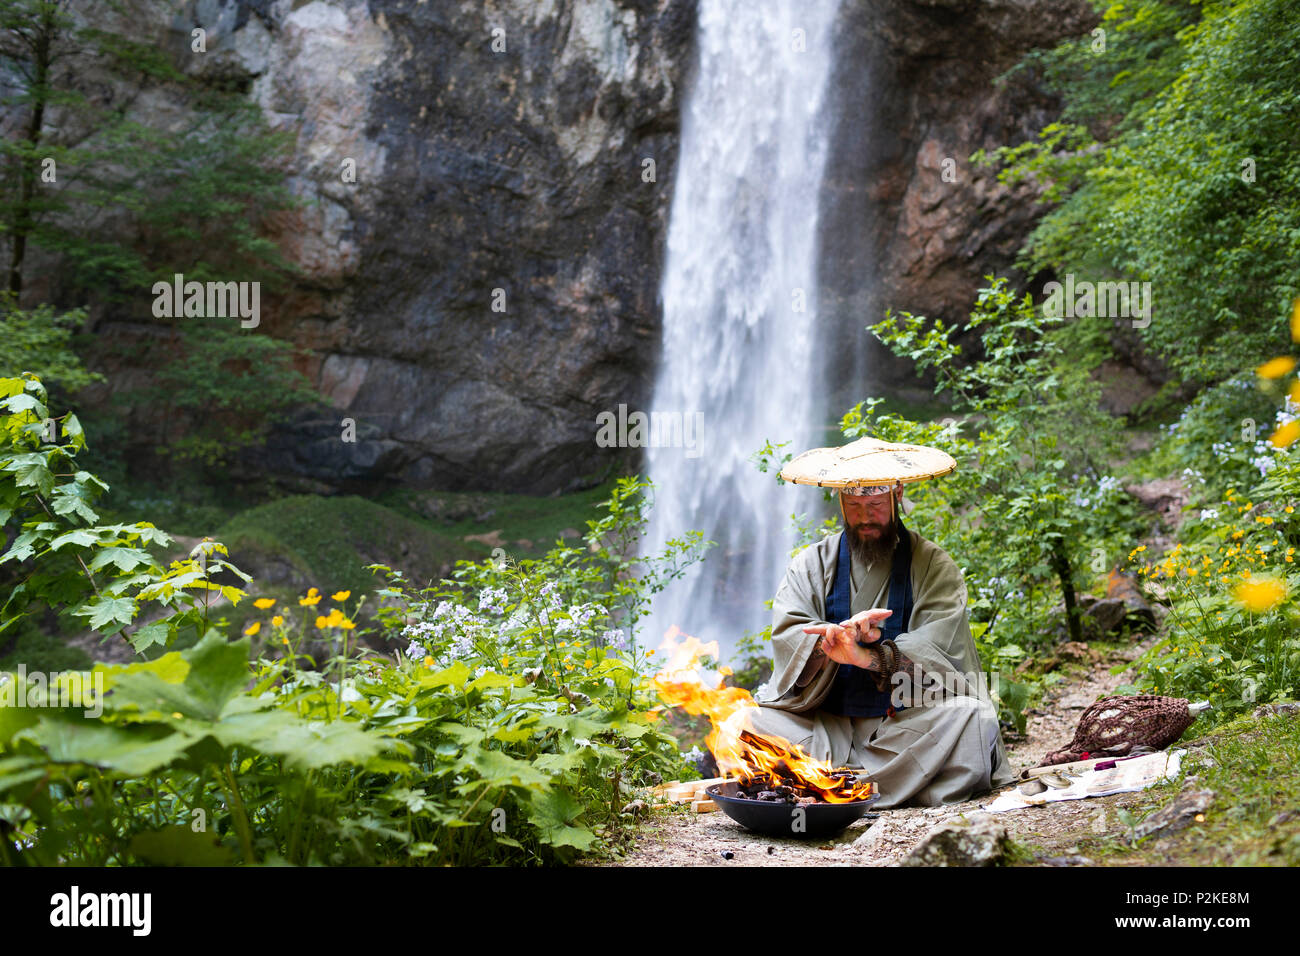 European man with beard and japanese robe makes fire ceremony in front of Great Waterfall in Austria - Stock Image